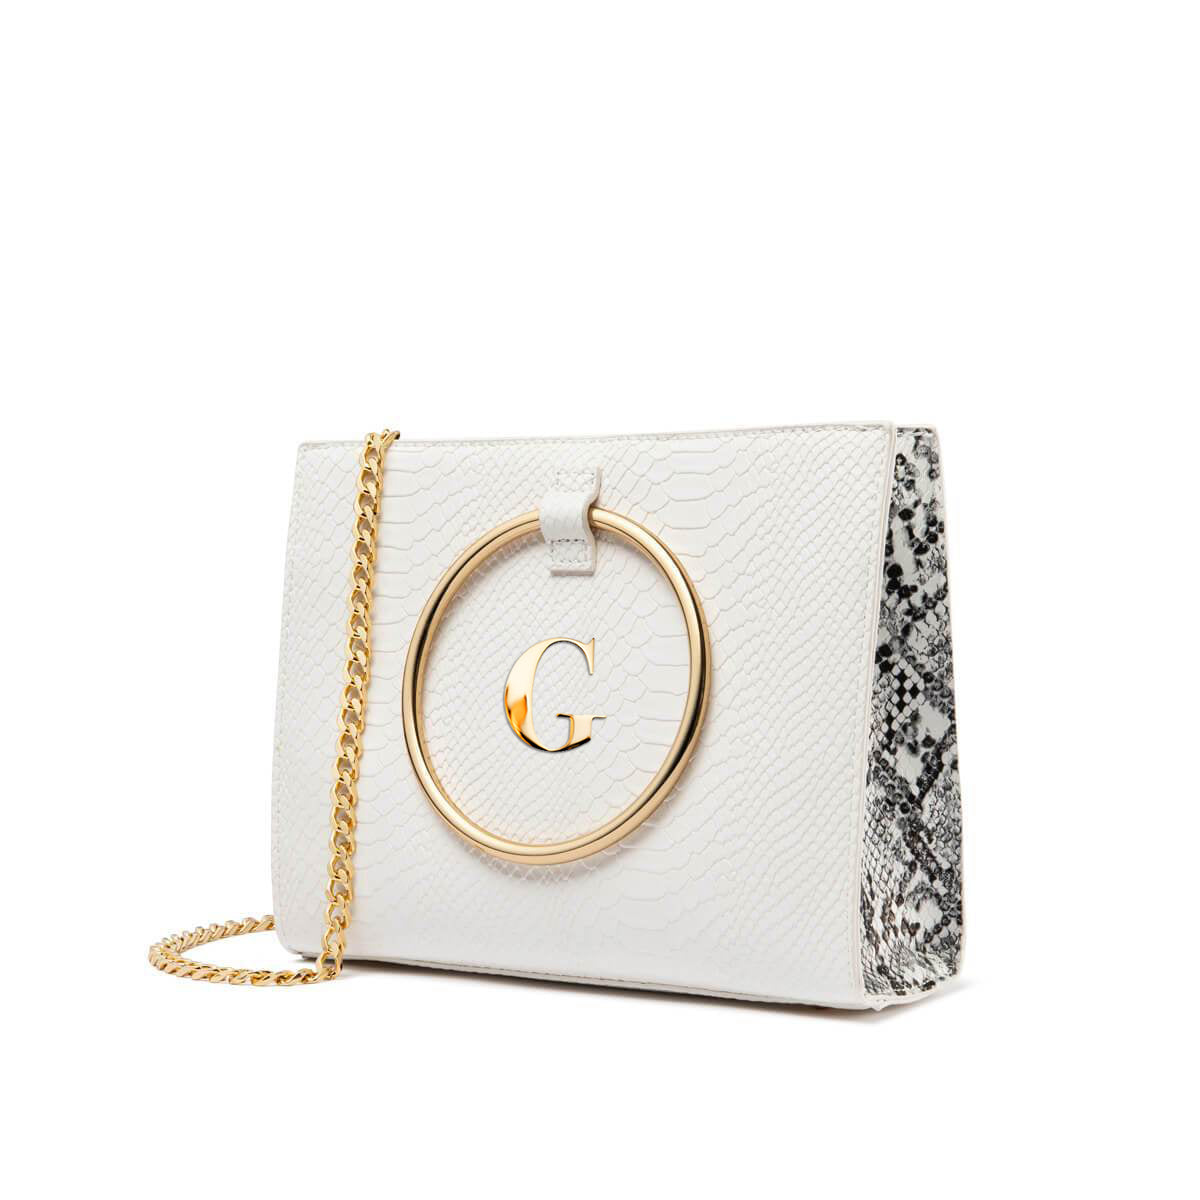 White Snake Moda Handbag Gold